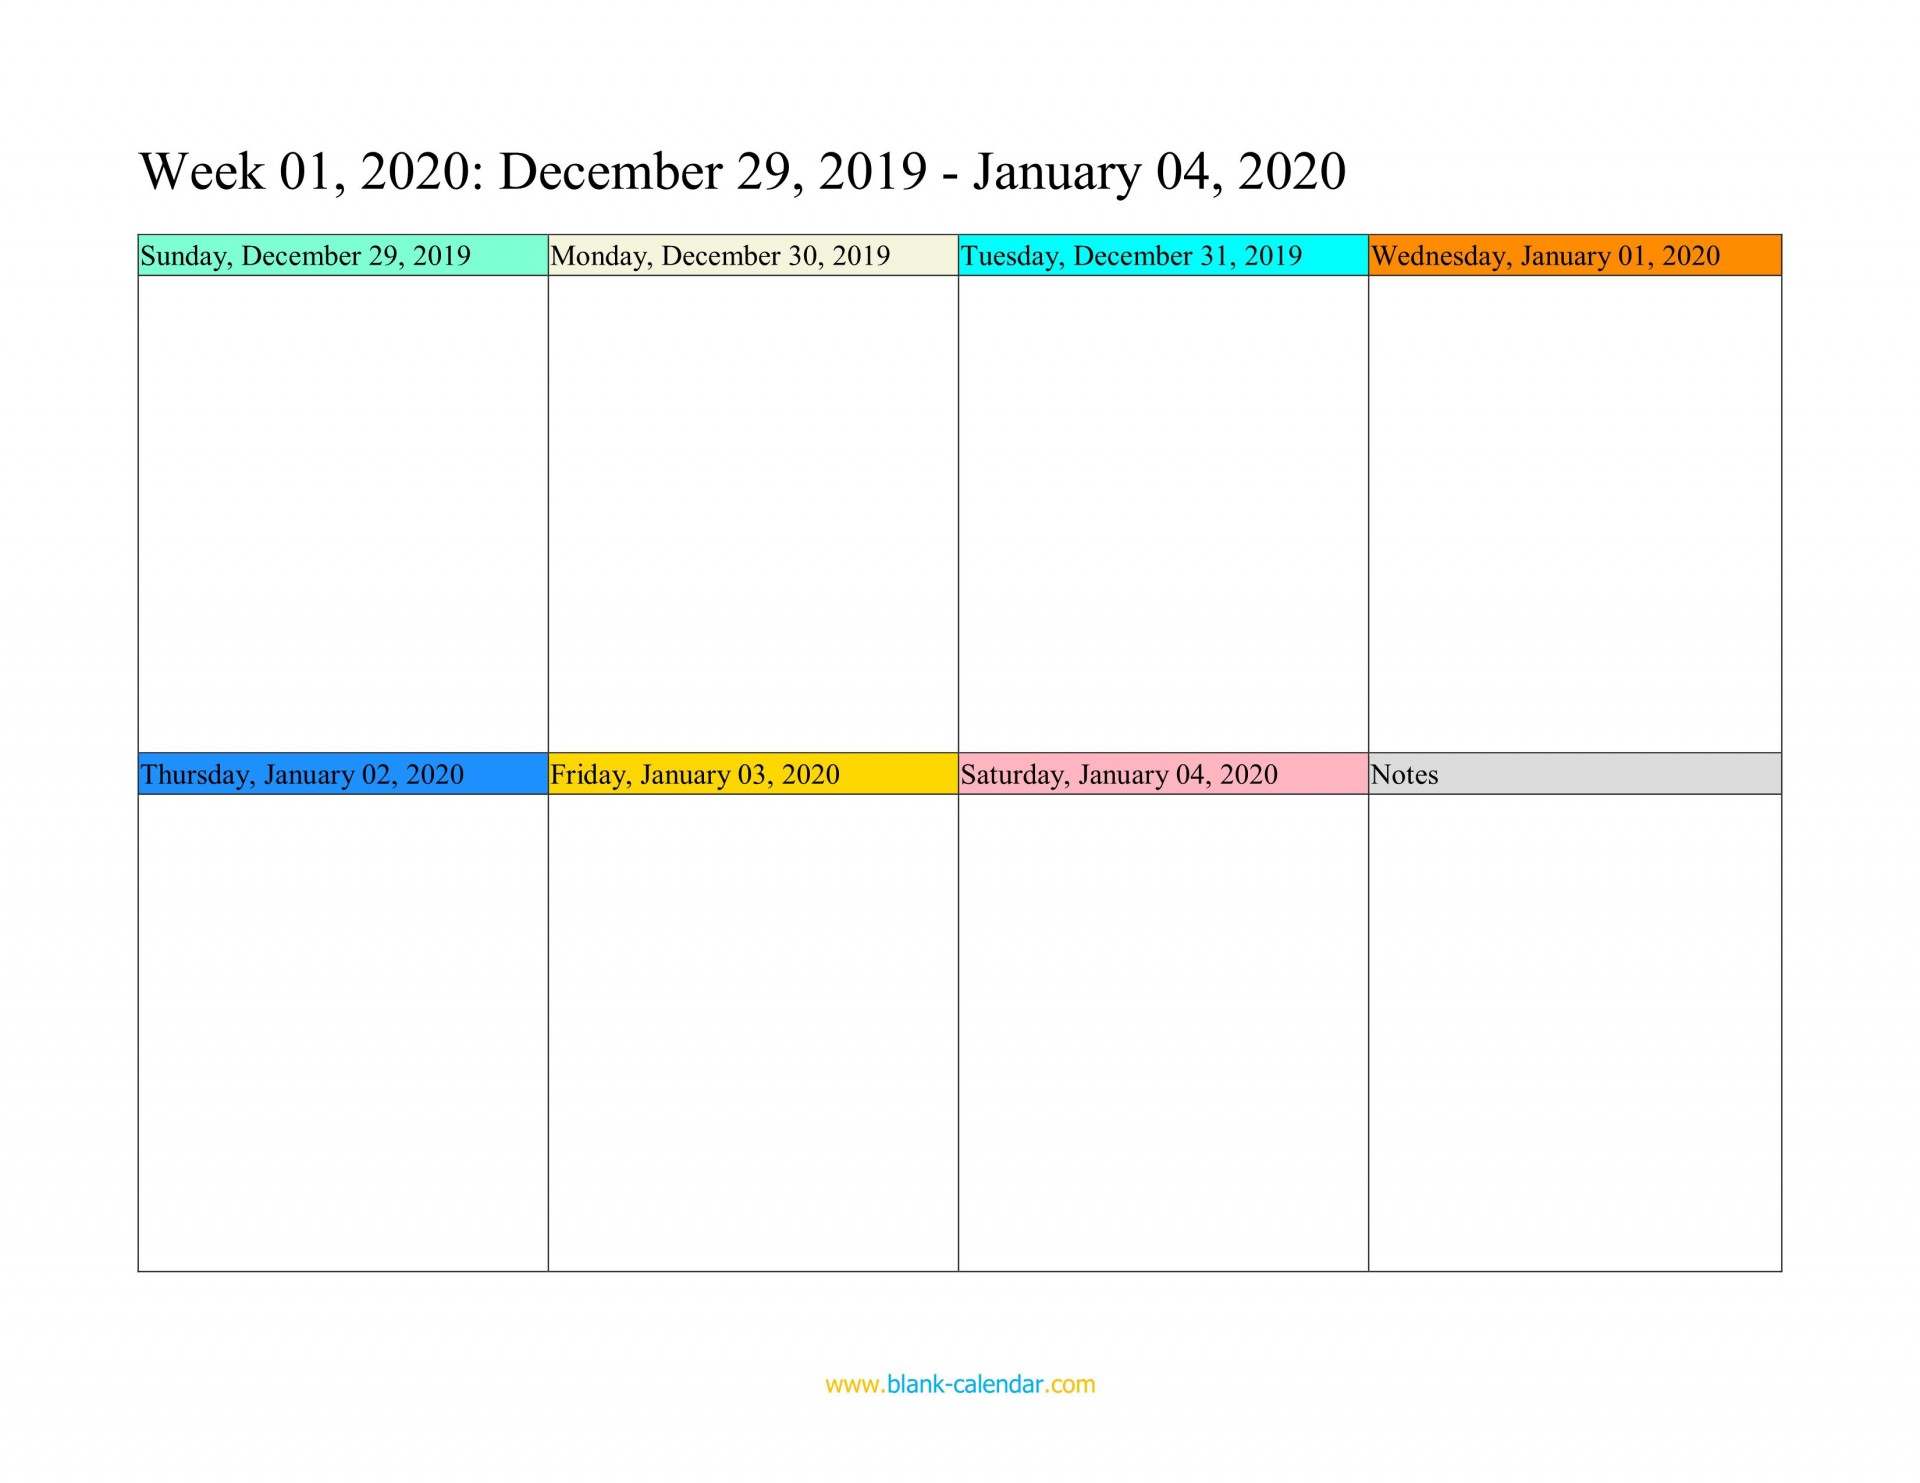 003 Unique Weekly Calendar 2020 Template Image  Appointment Blank1920